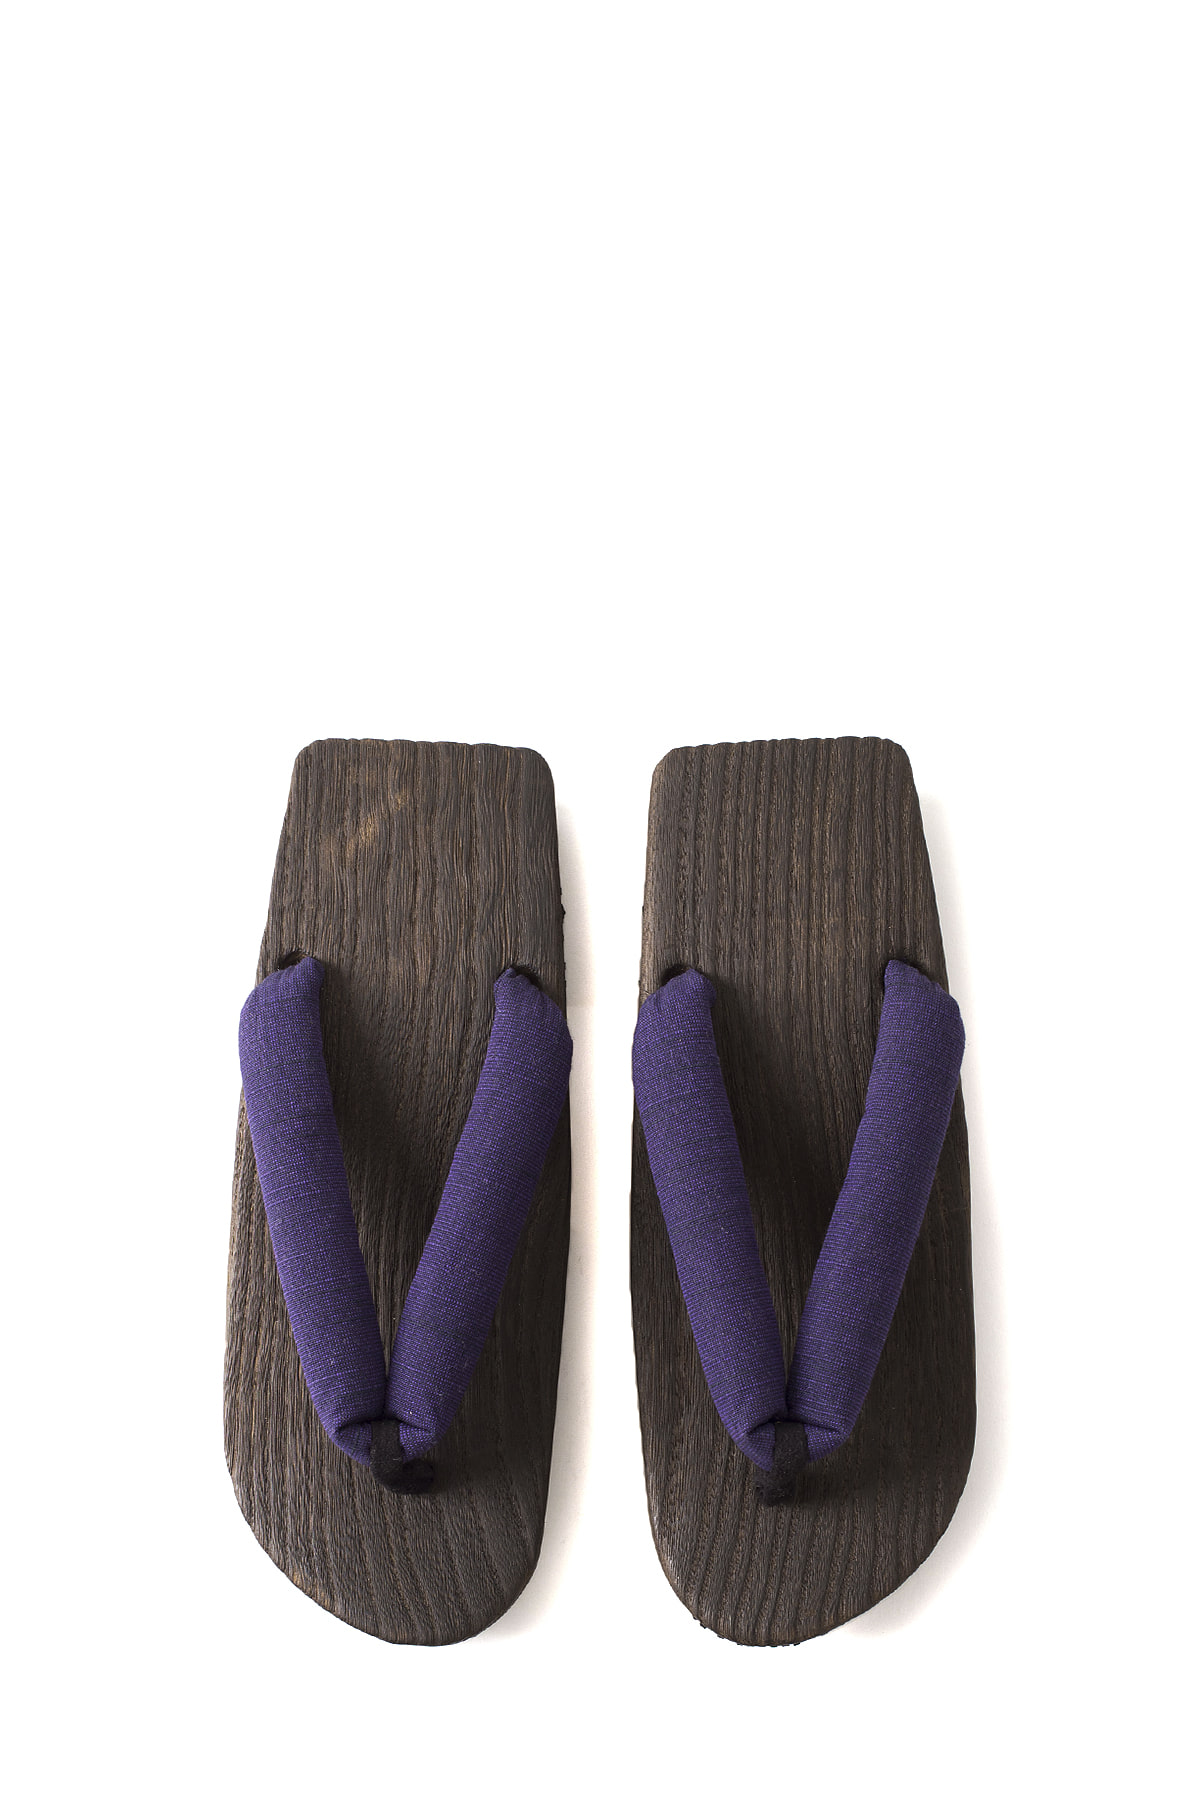 NEEDLES : Geta Sandals With Tsumugi Thong (Purple)